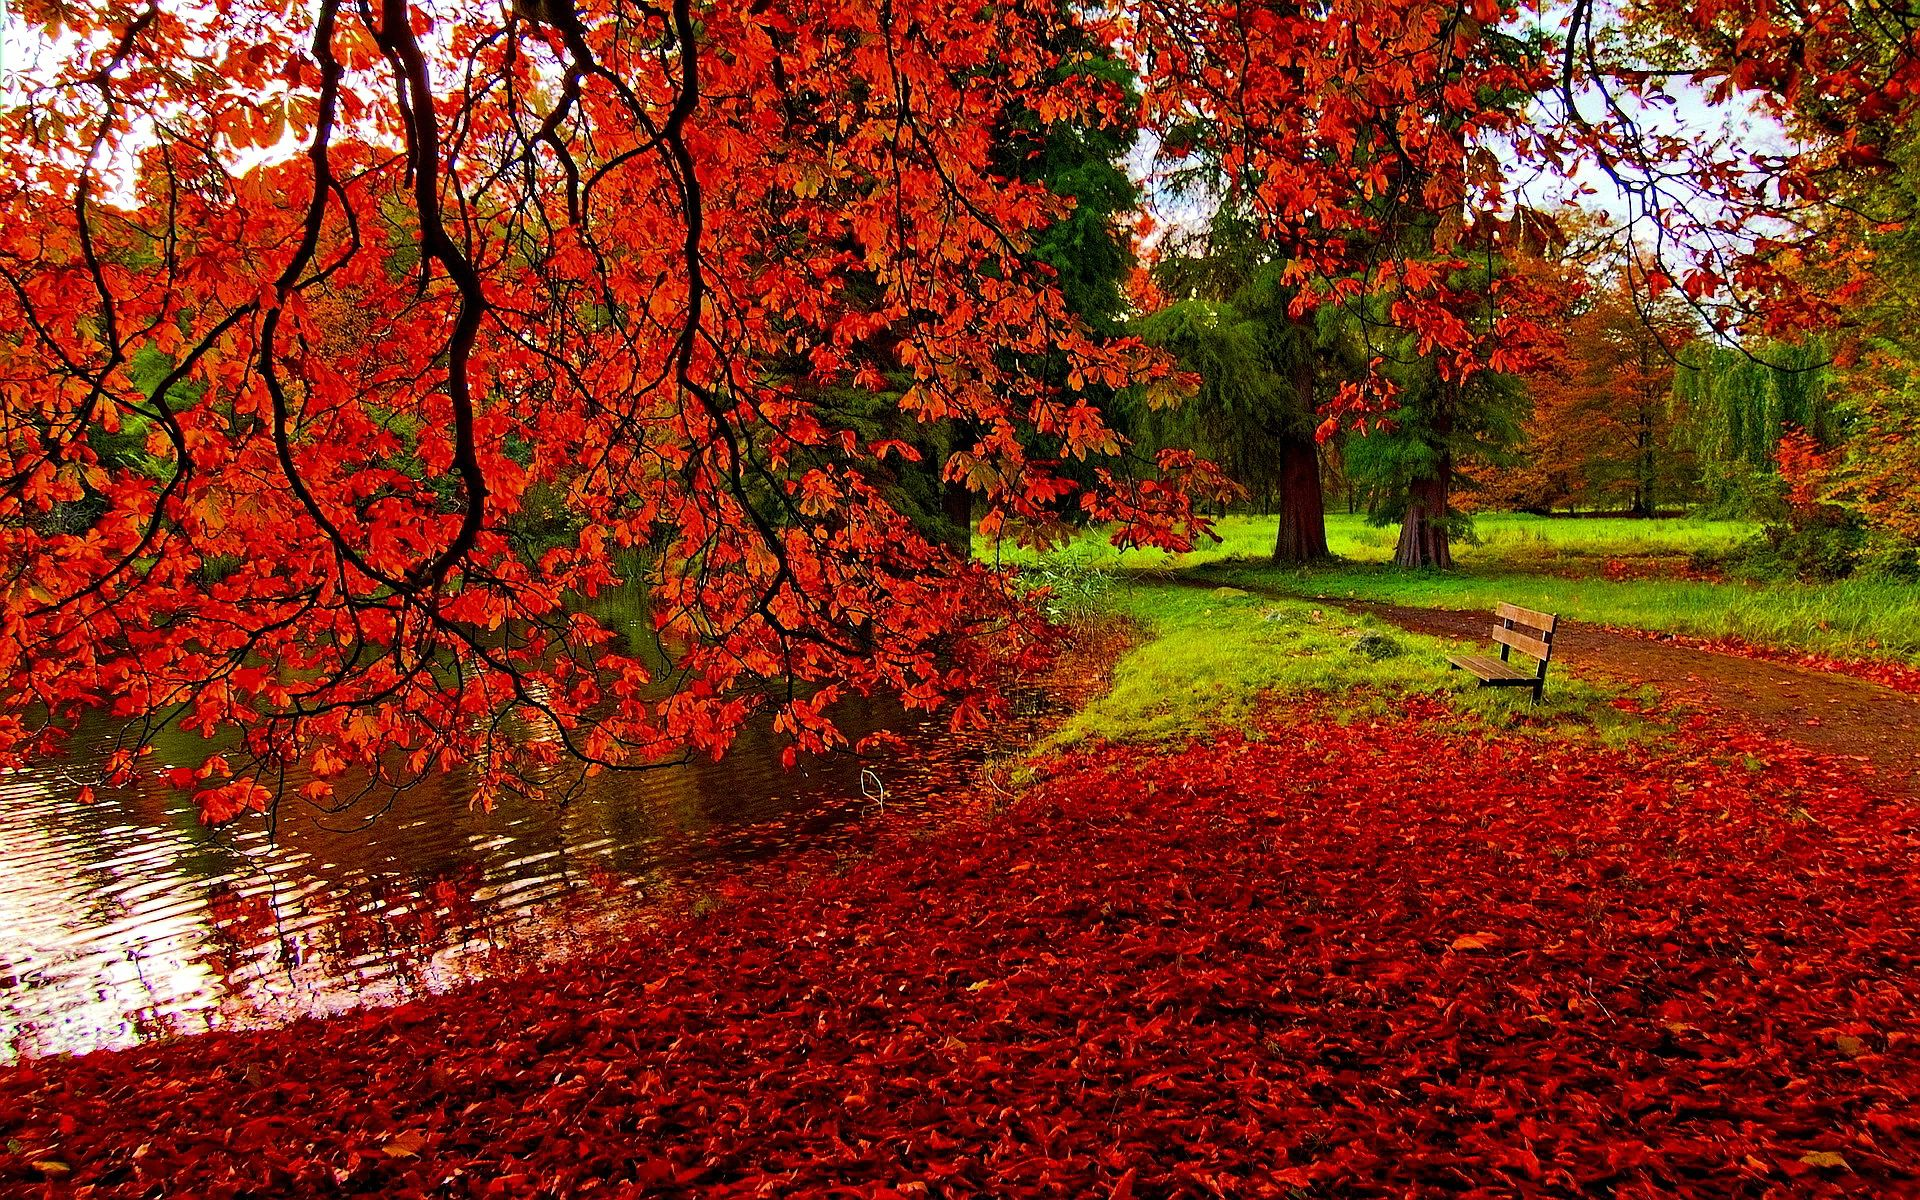 Backgrounds of Autumn Nature HD